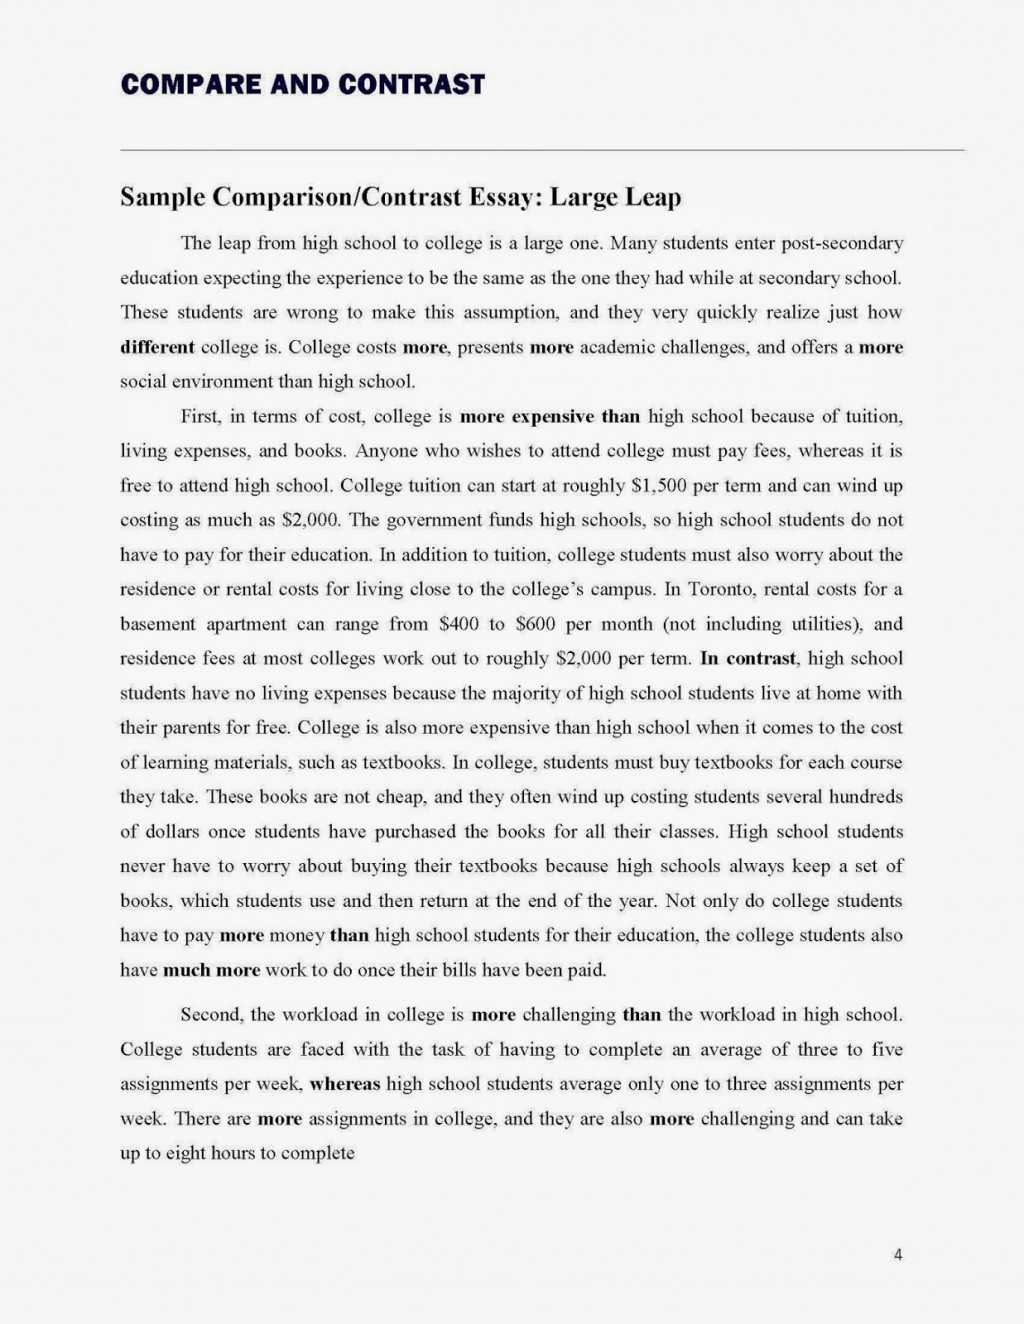 005 Compare And Contrast Essay Introduction Example Compare2band2bcontrast2bessay Page 4 Stirring Sample Large